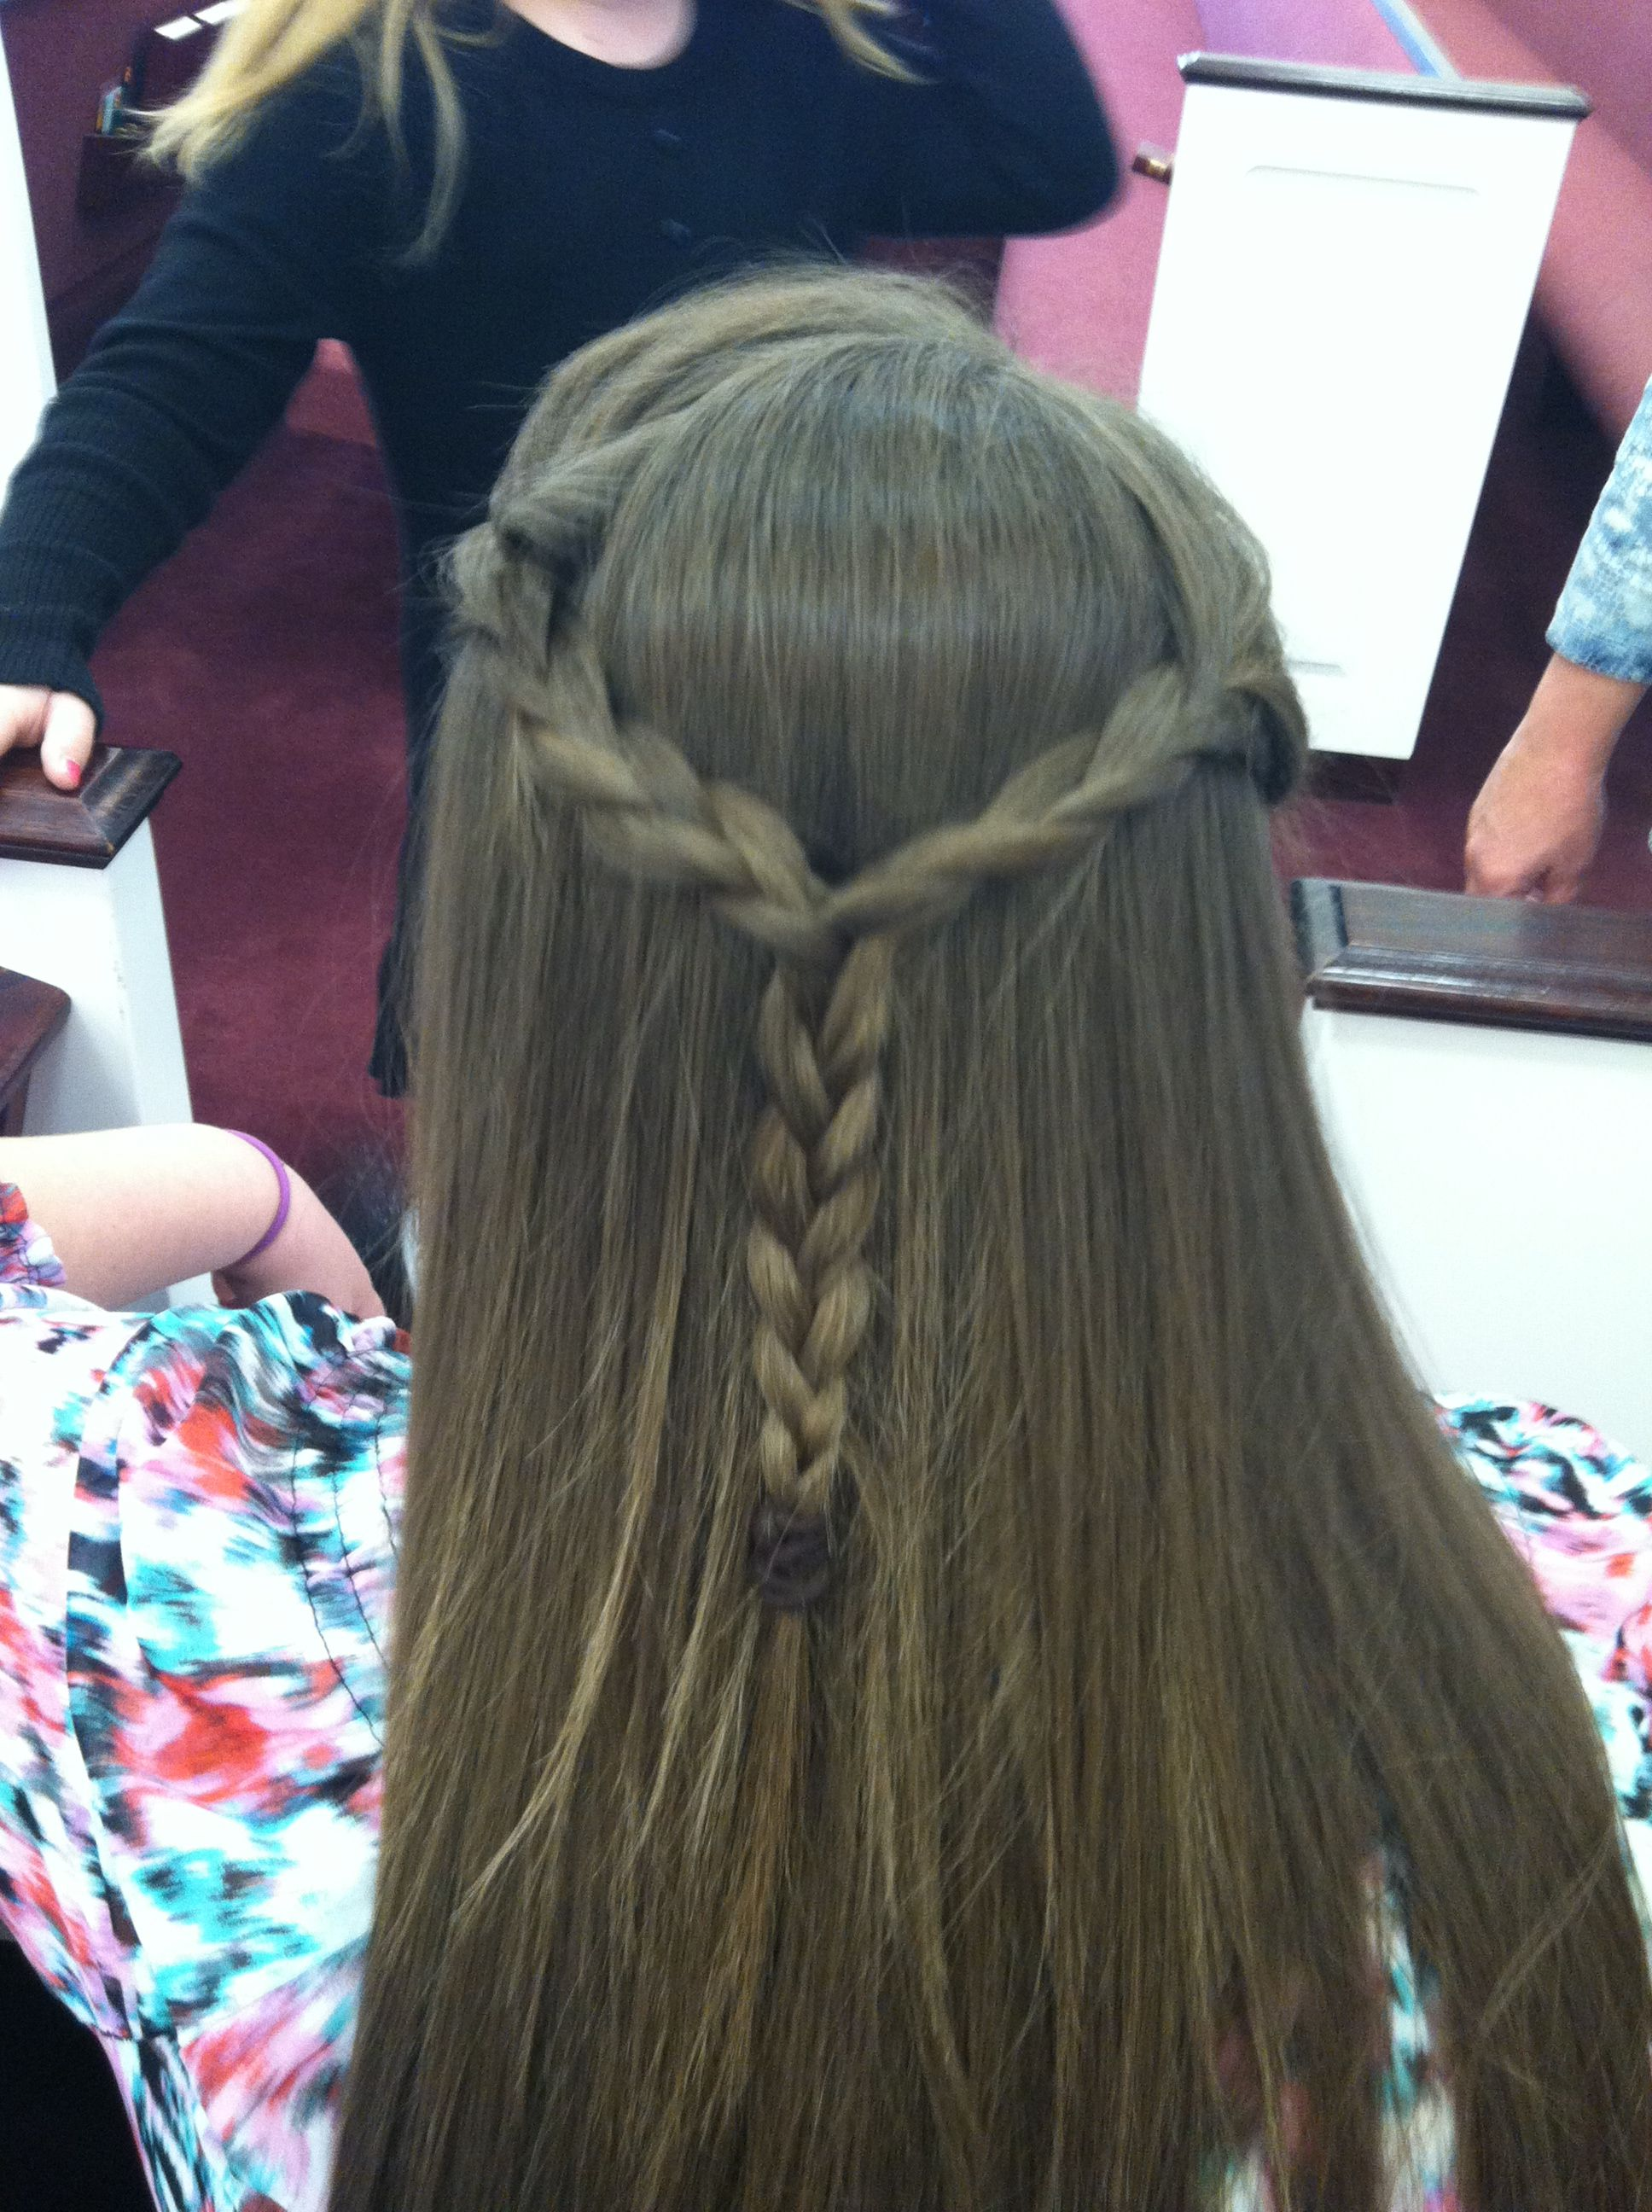 I want to be able to do this to my hair :( but I can only do others